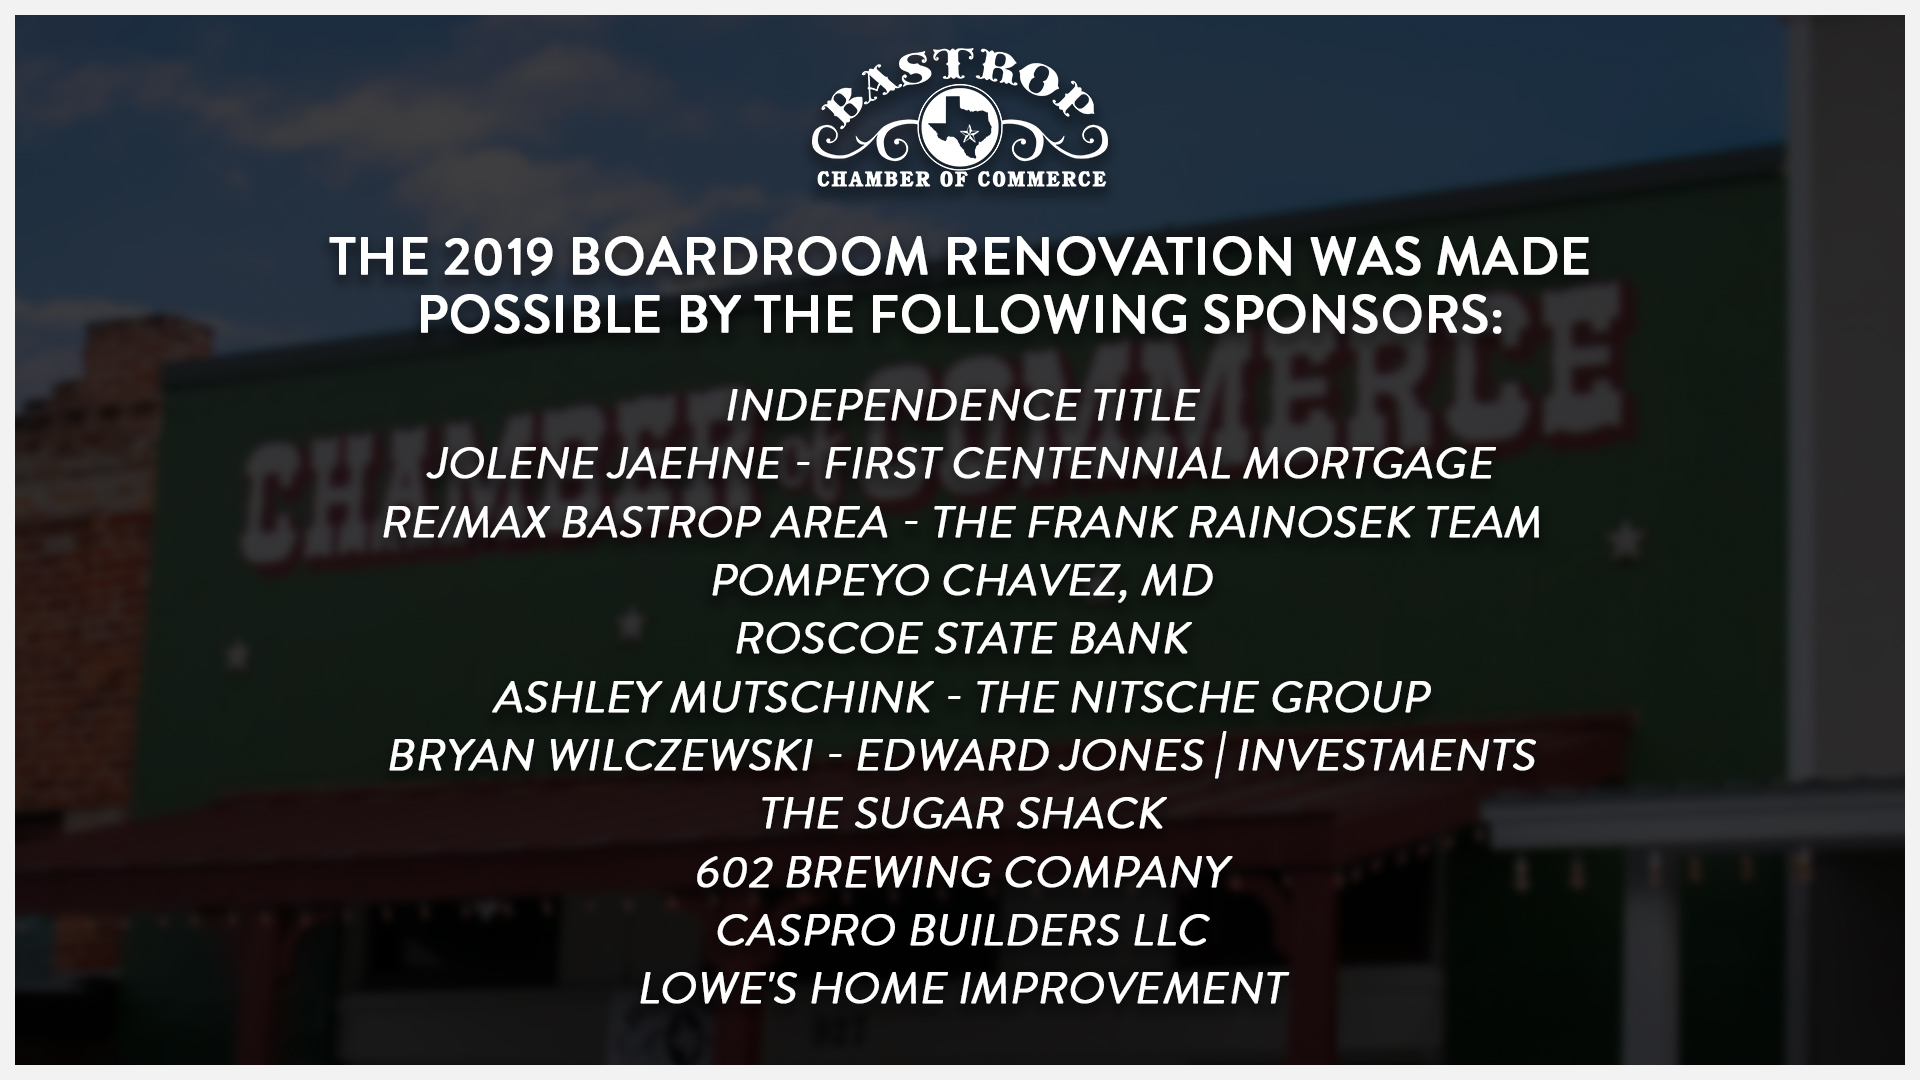 2019 Board Room Renovation